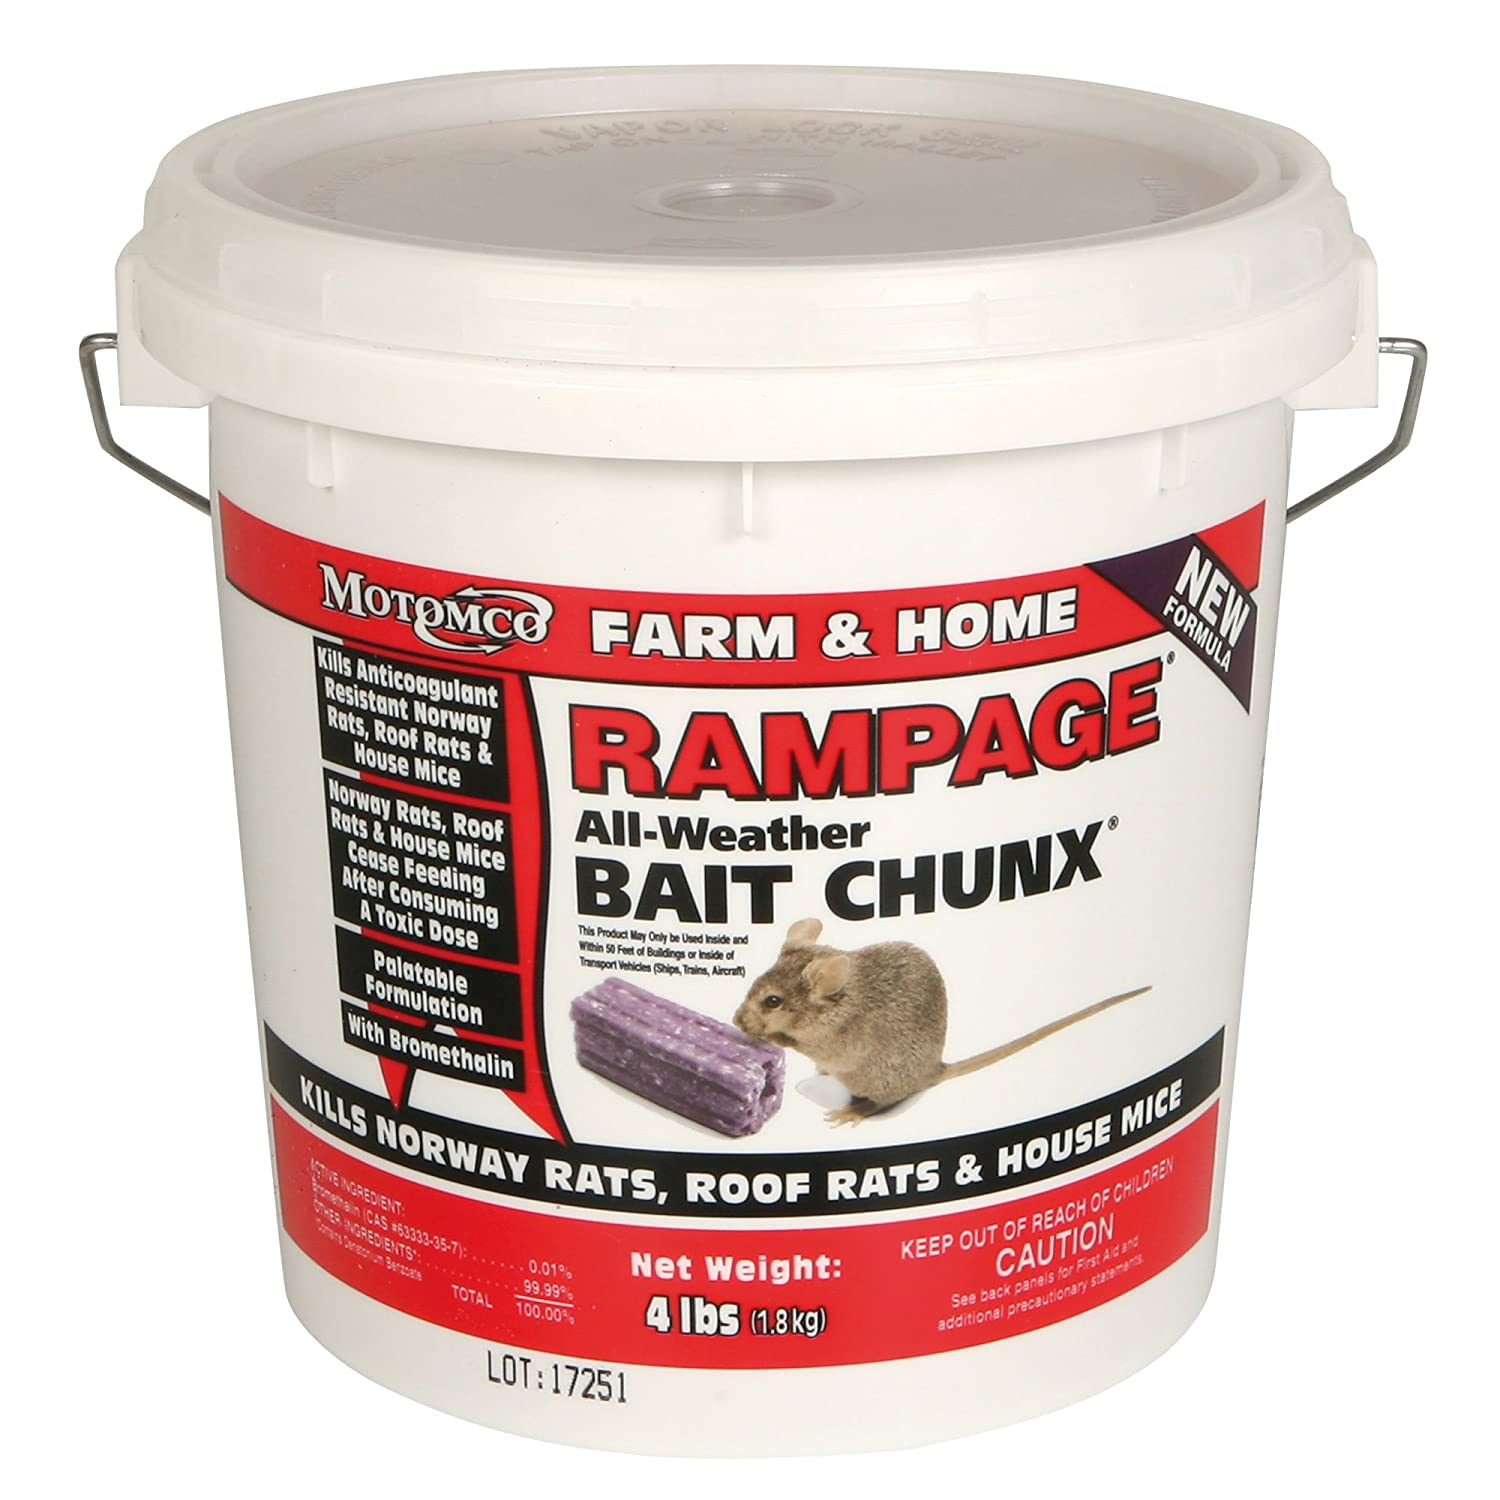 motomco rampage rat bait 4 lb bucket chunx 22249 amazon co uk rh amazon co uk